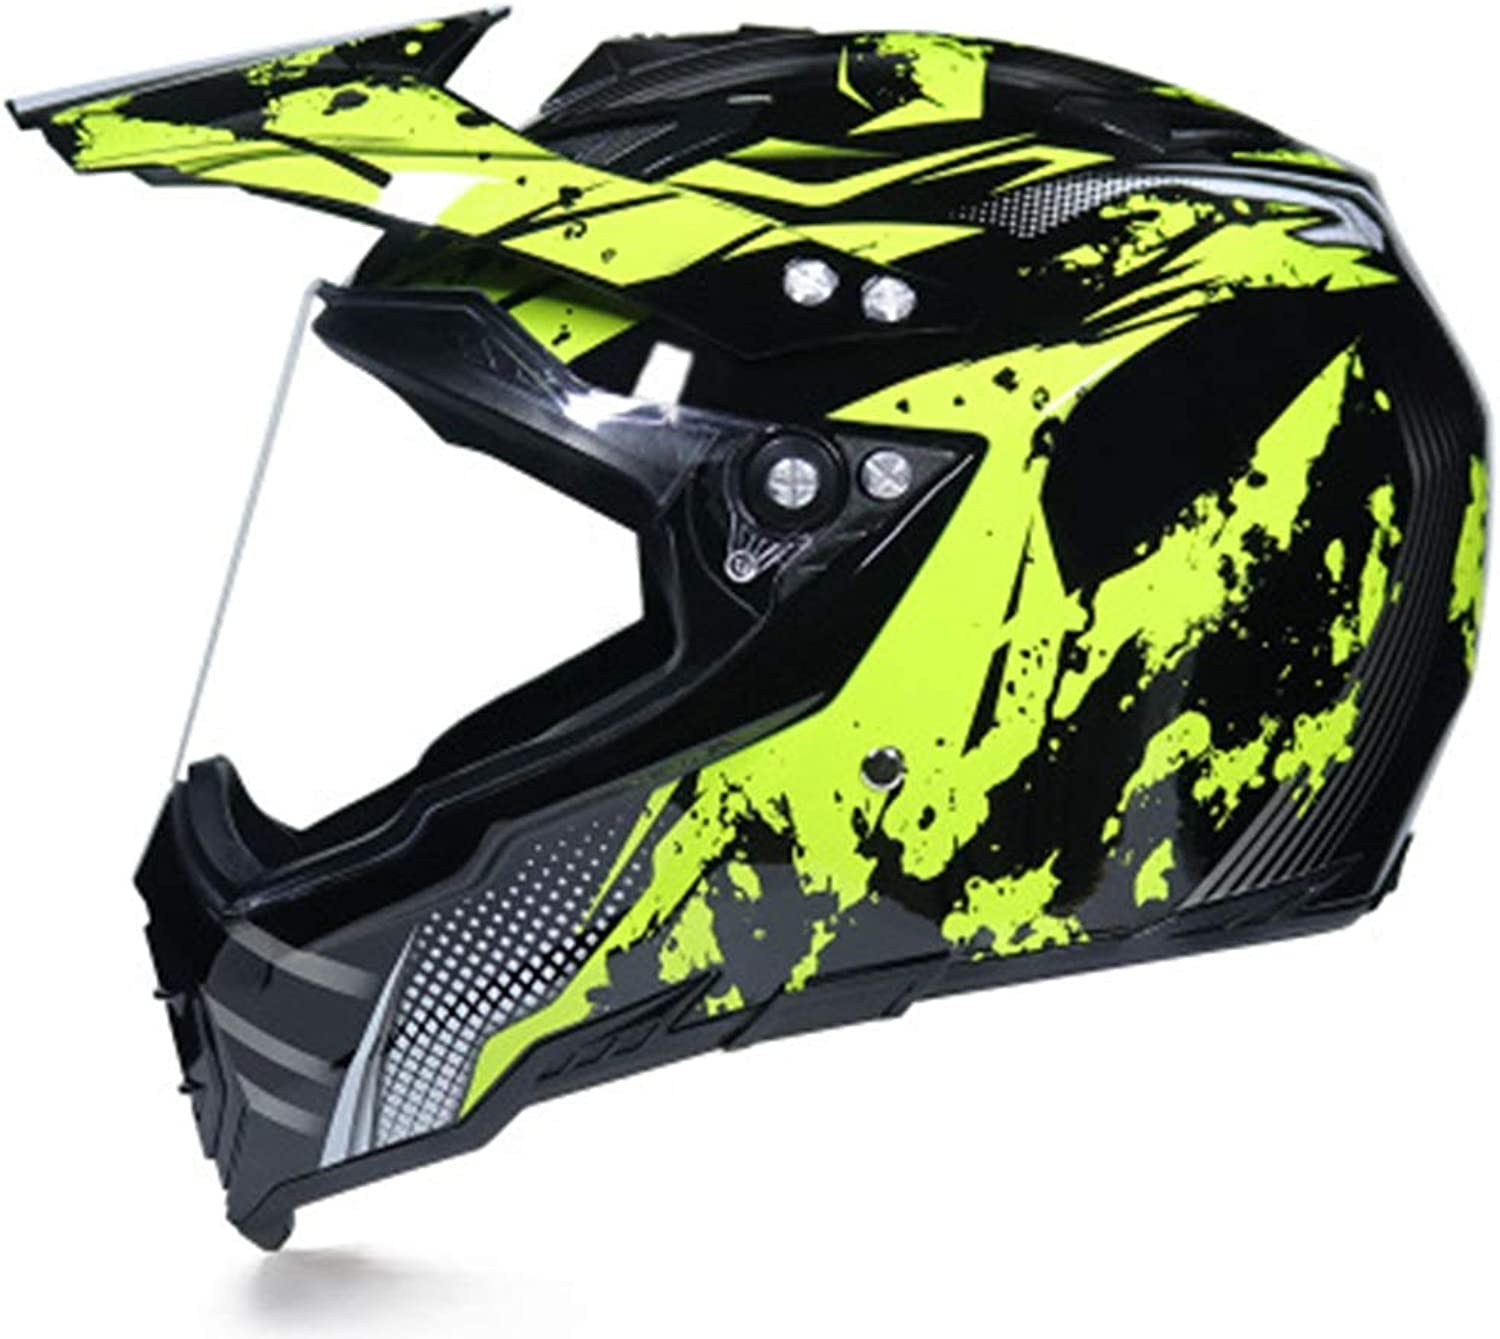 Songlin@yuan Creative Motocross Helmet Men's Rally Helmet Personality Cool Locomotive Helmet Road Helmet Full Cover Four Seasons Predection